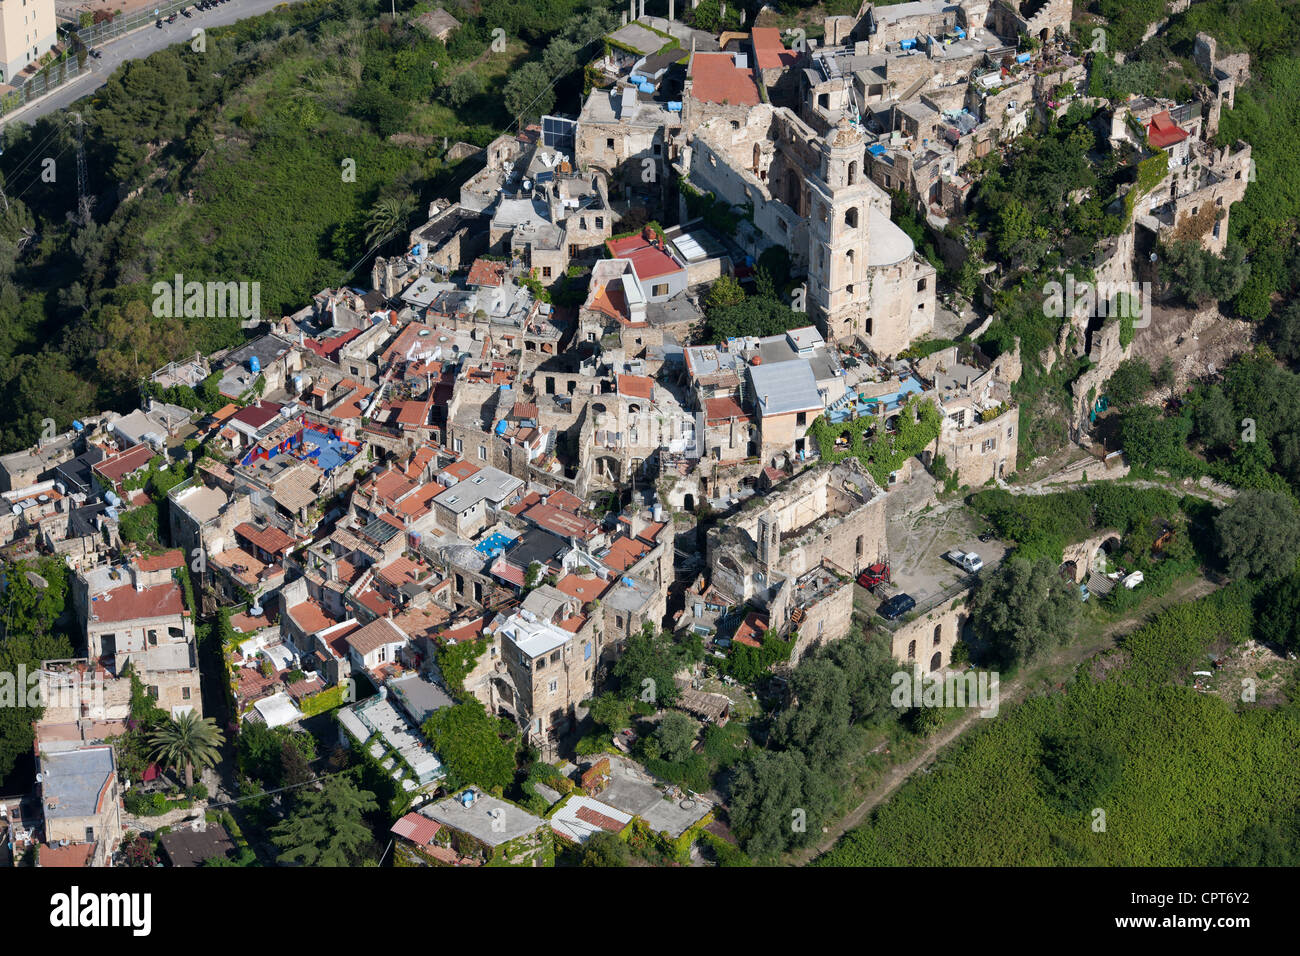 RESURRECTED PERCHED VILLAGE (aerial view). Bussana Vecchia (destroyed by an earthquake, resurrected by artists), Stock Photo